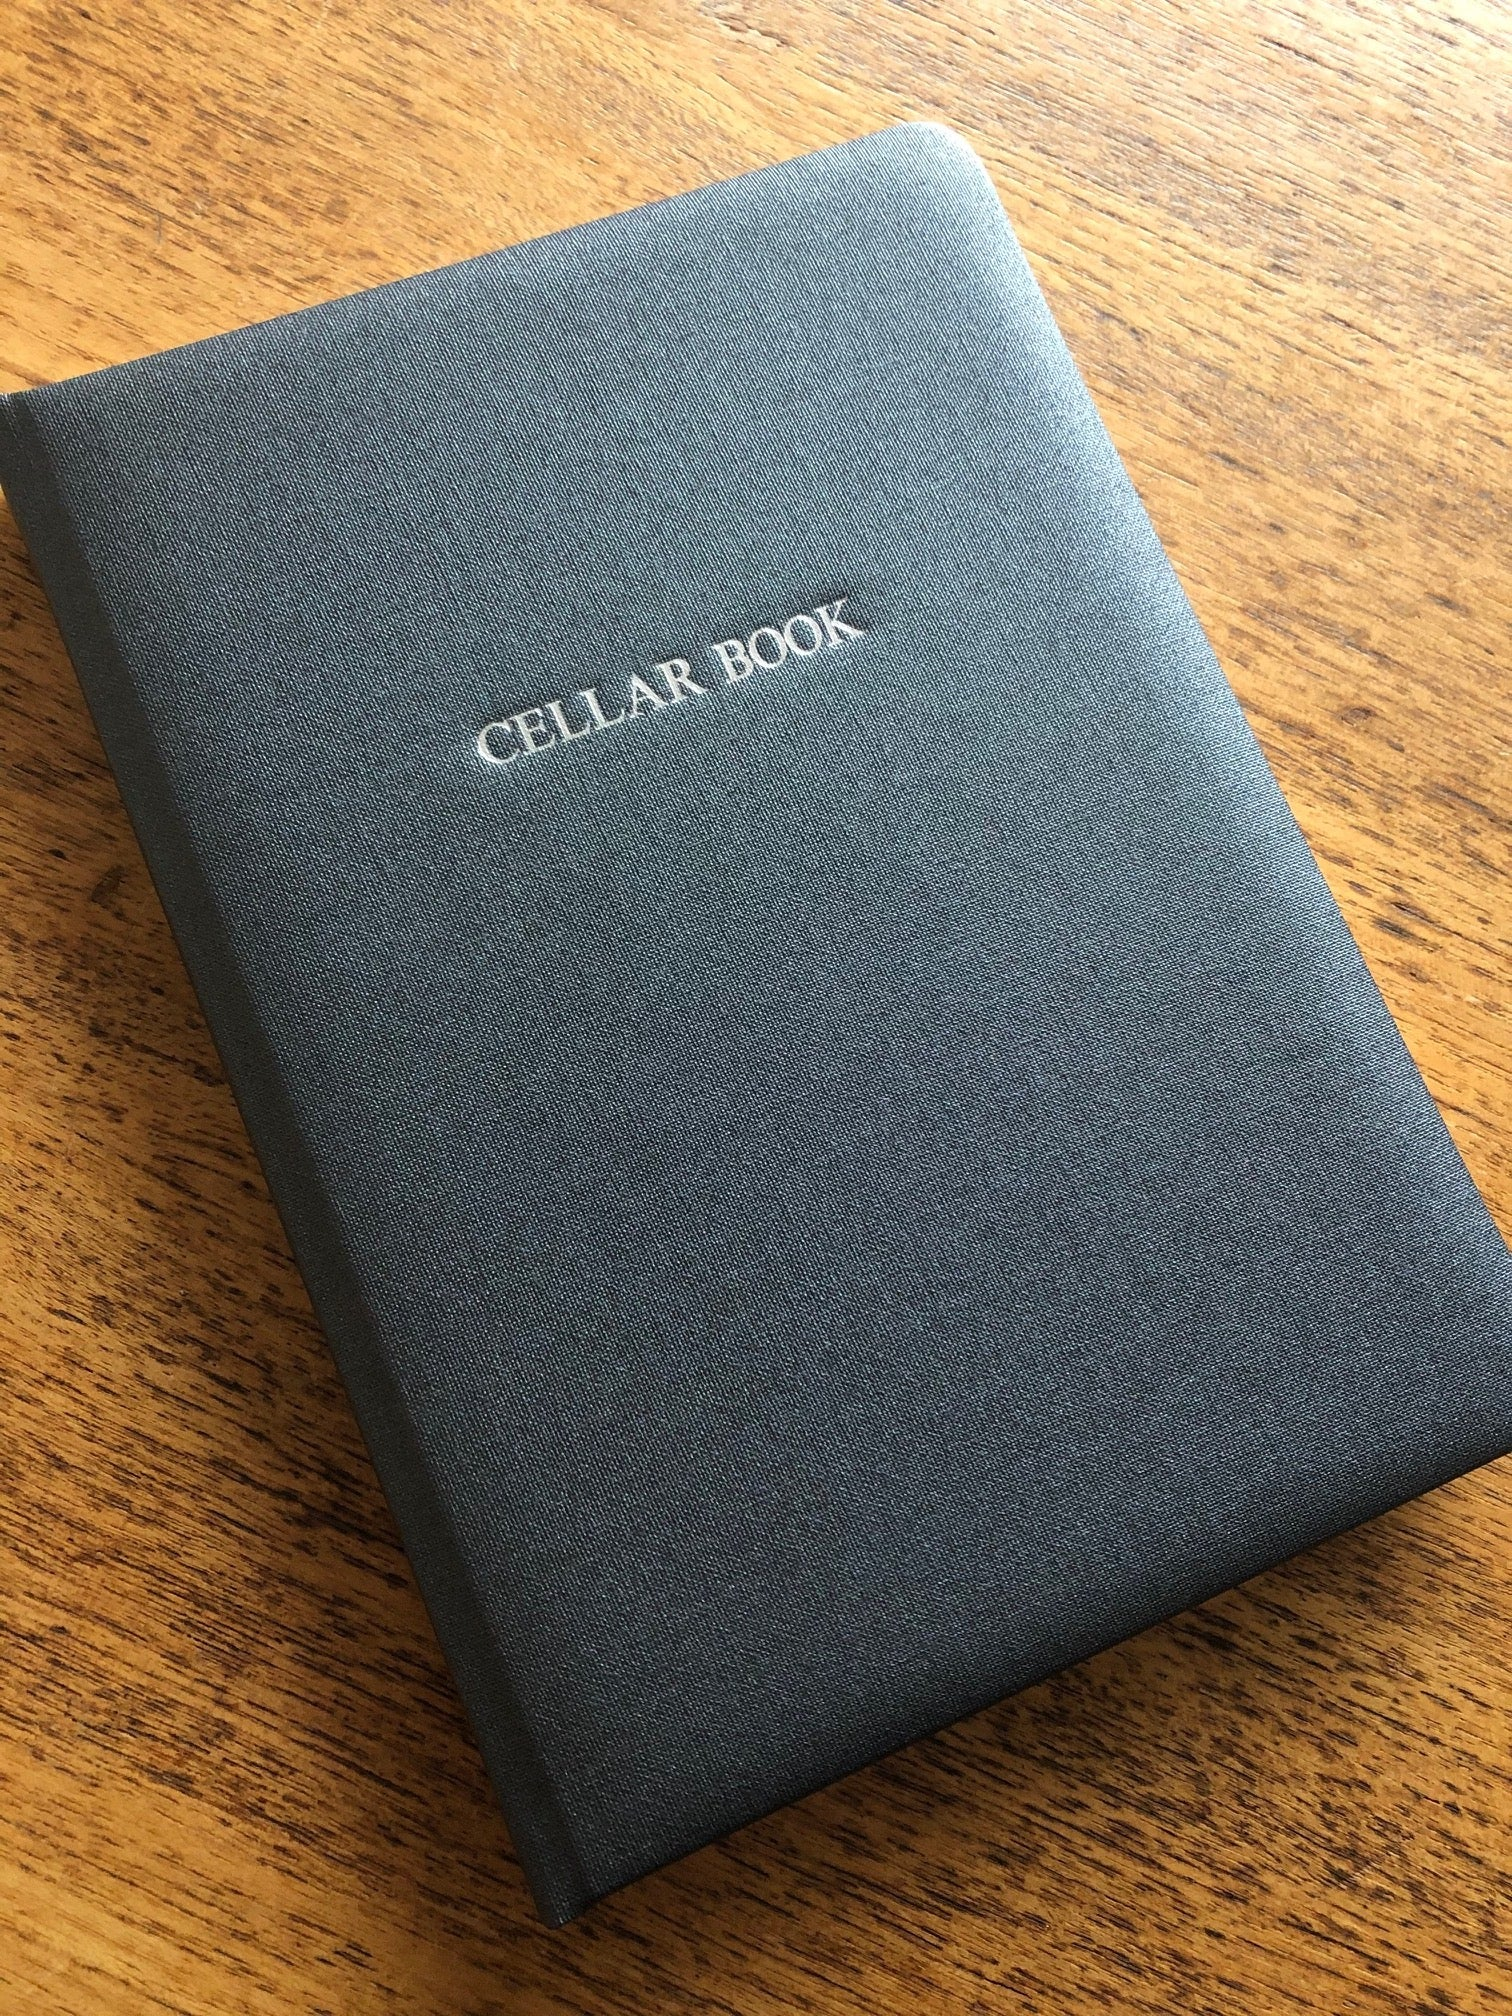 Image of Metallic Buckram Cellar Book in Steel Grey